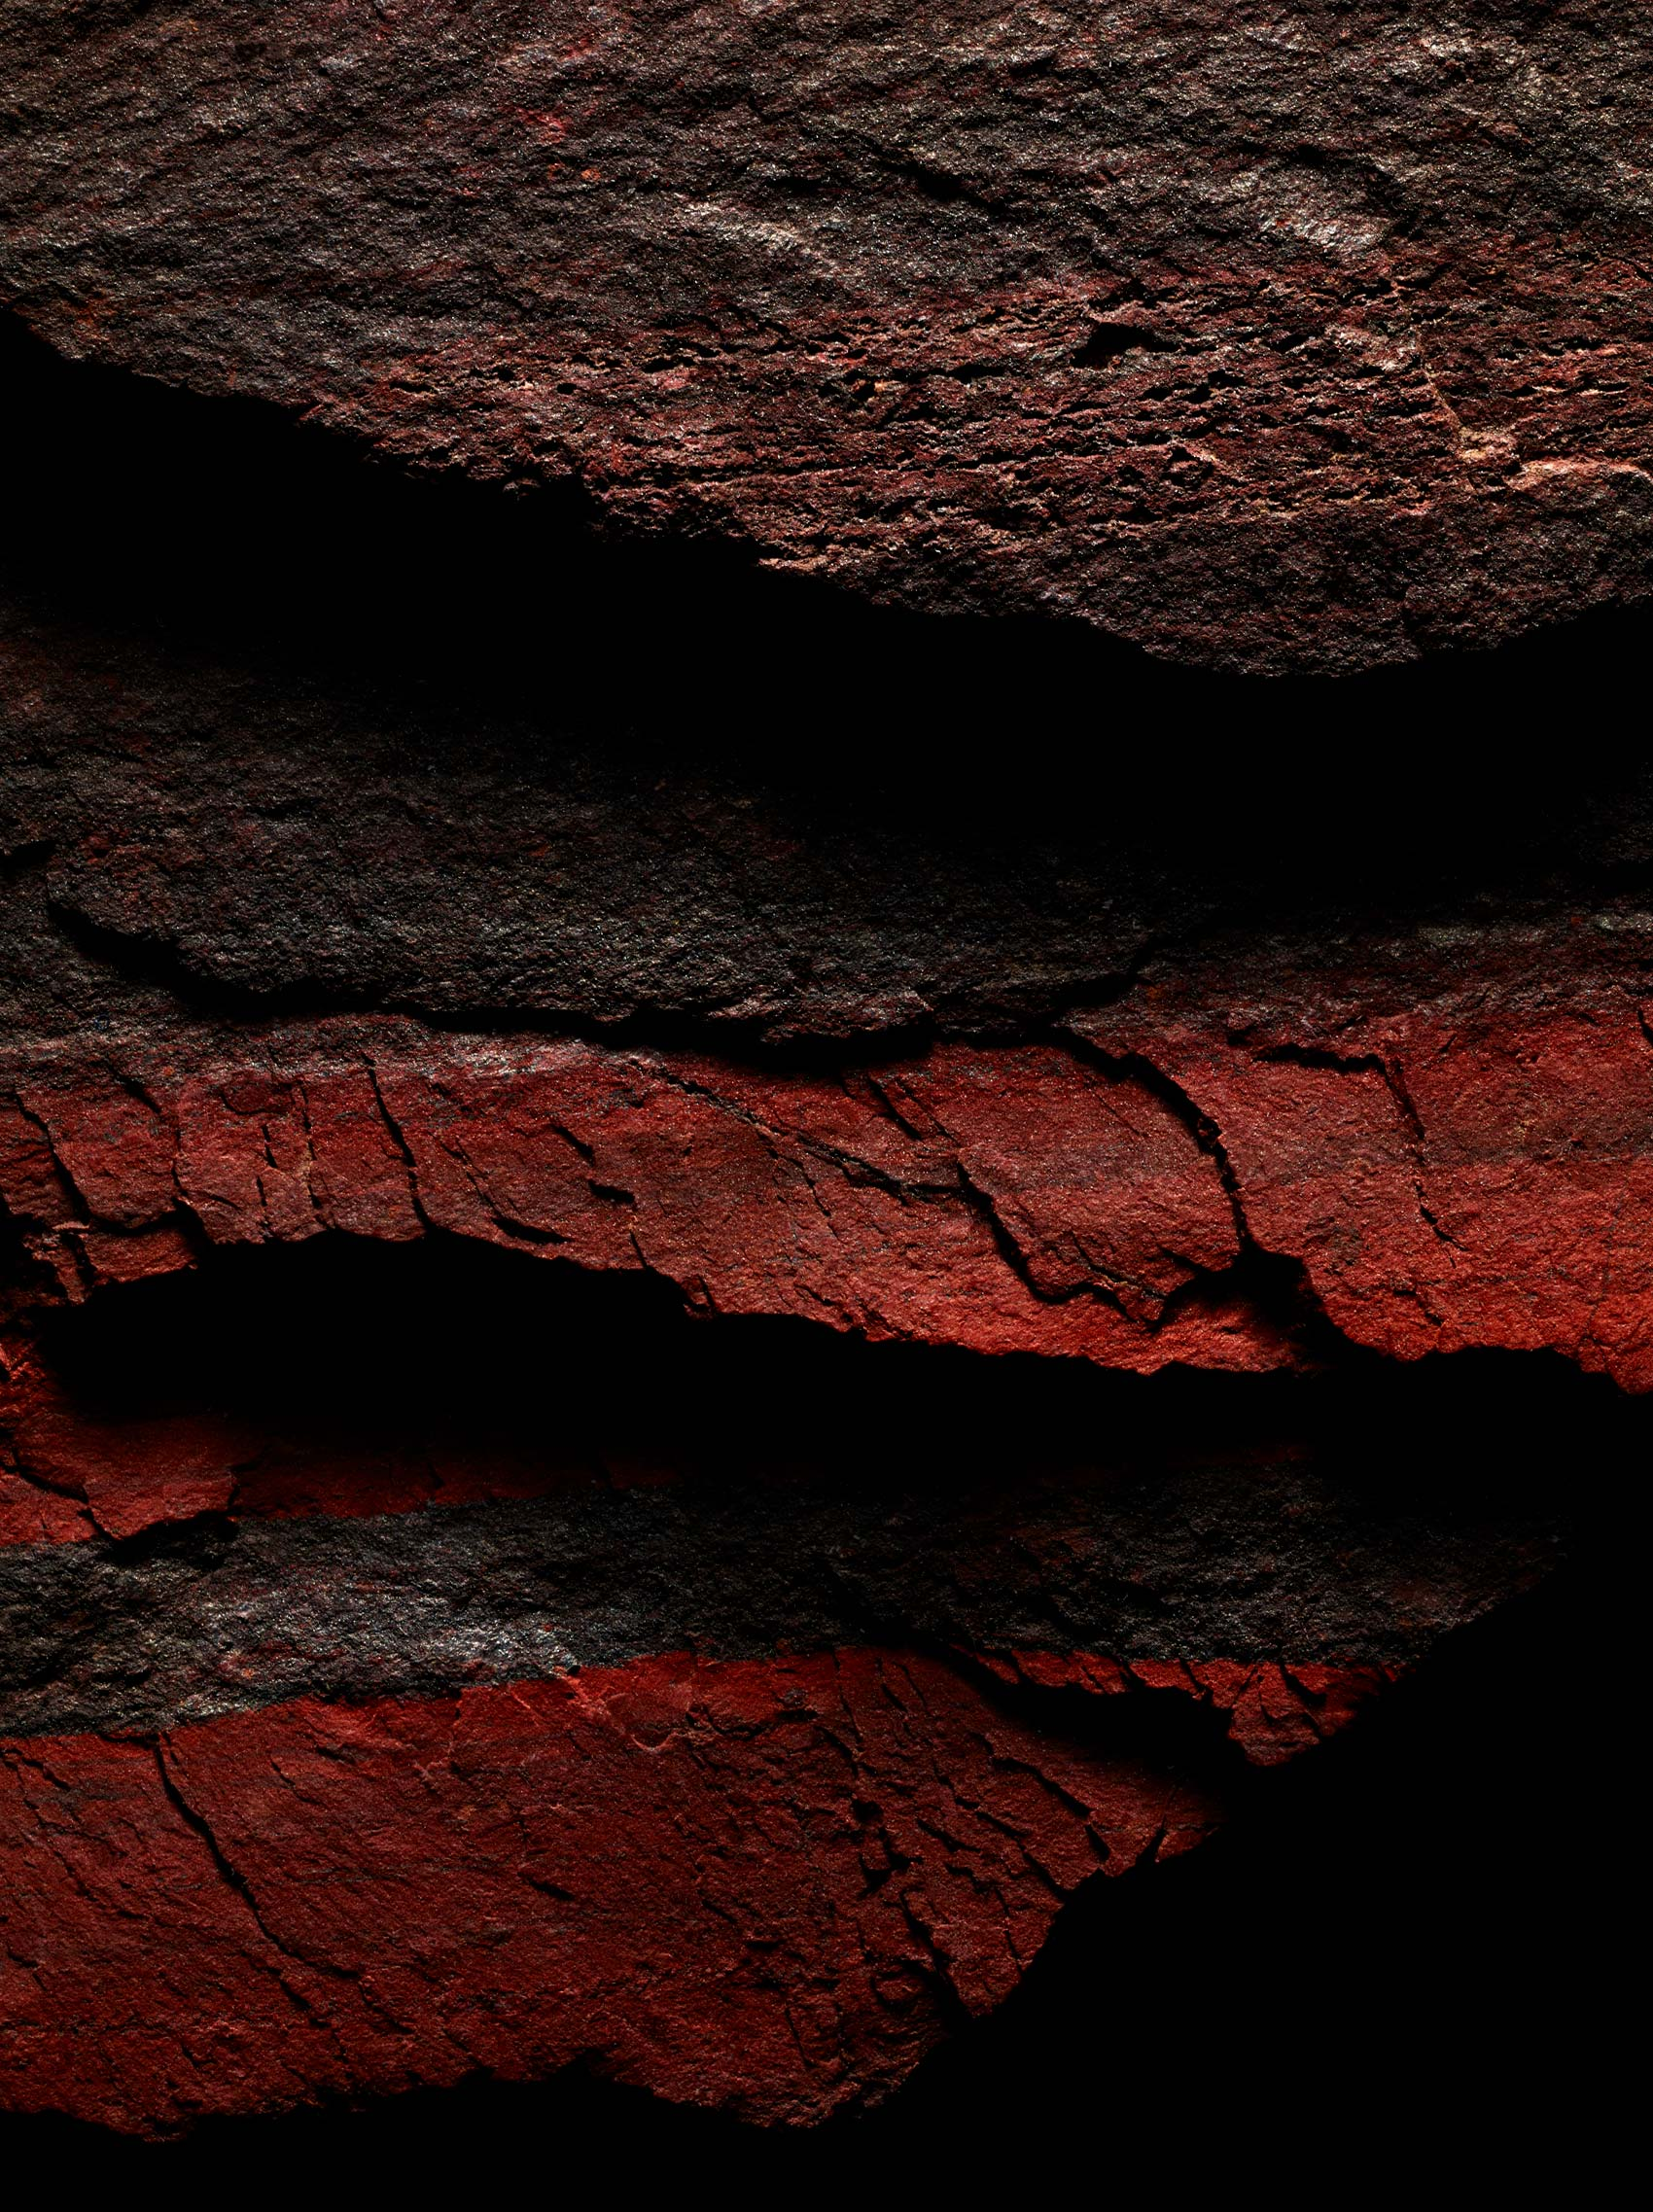 Macro Photography of Red Rocks